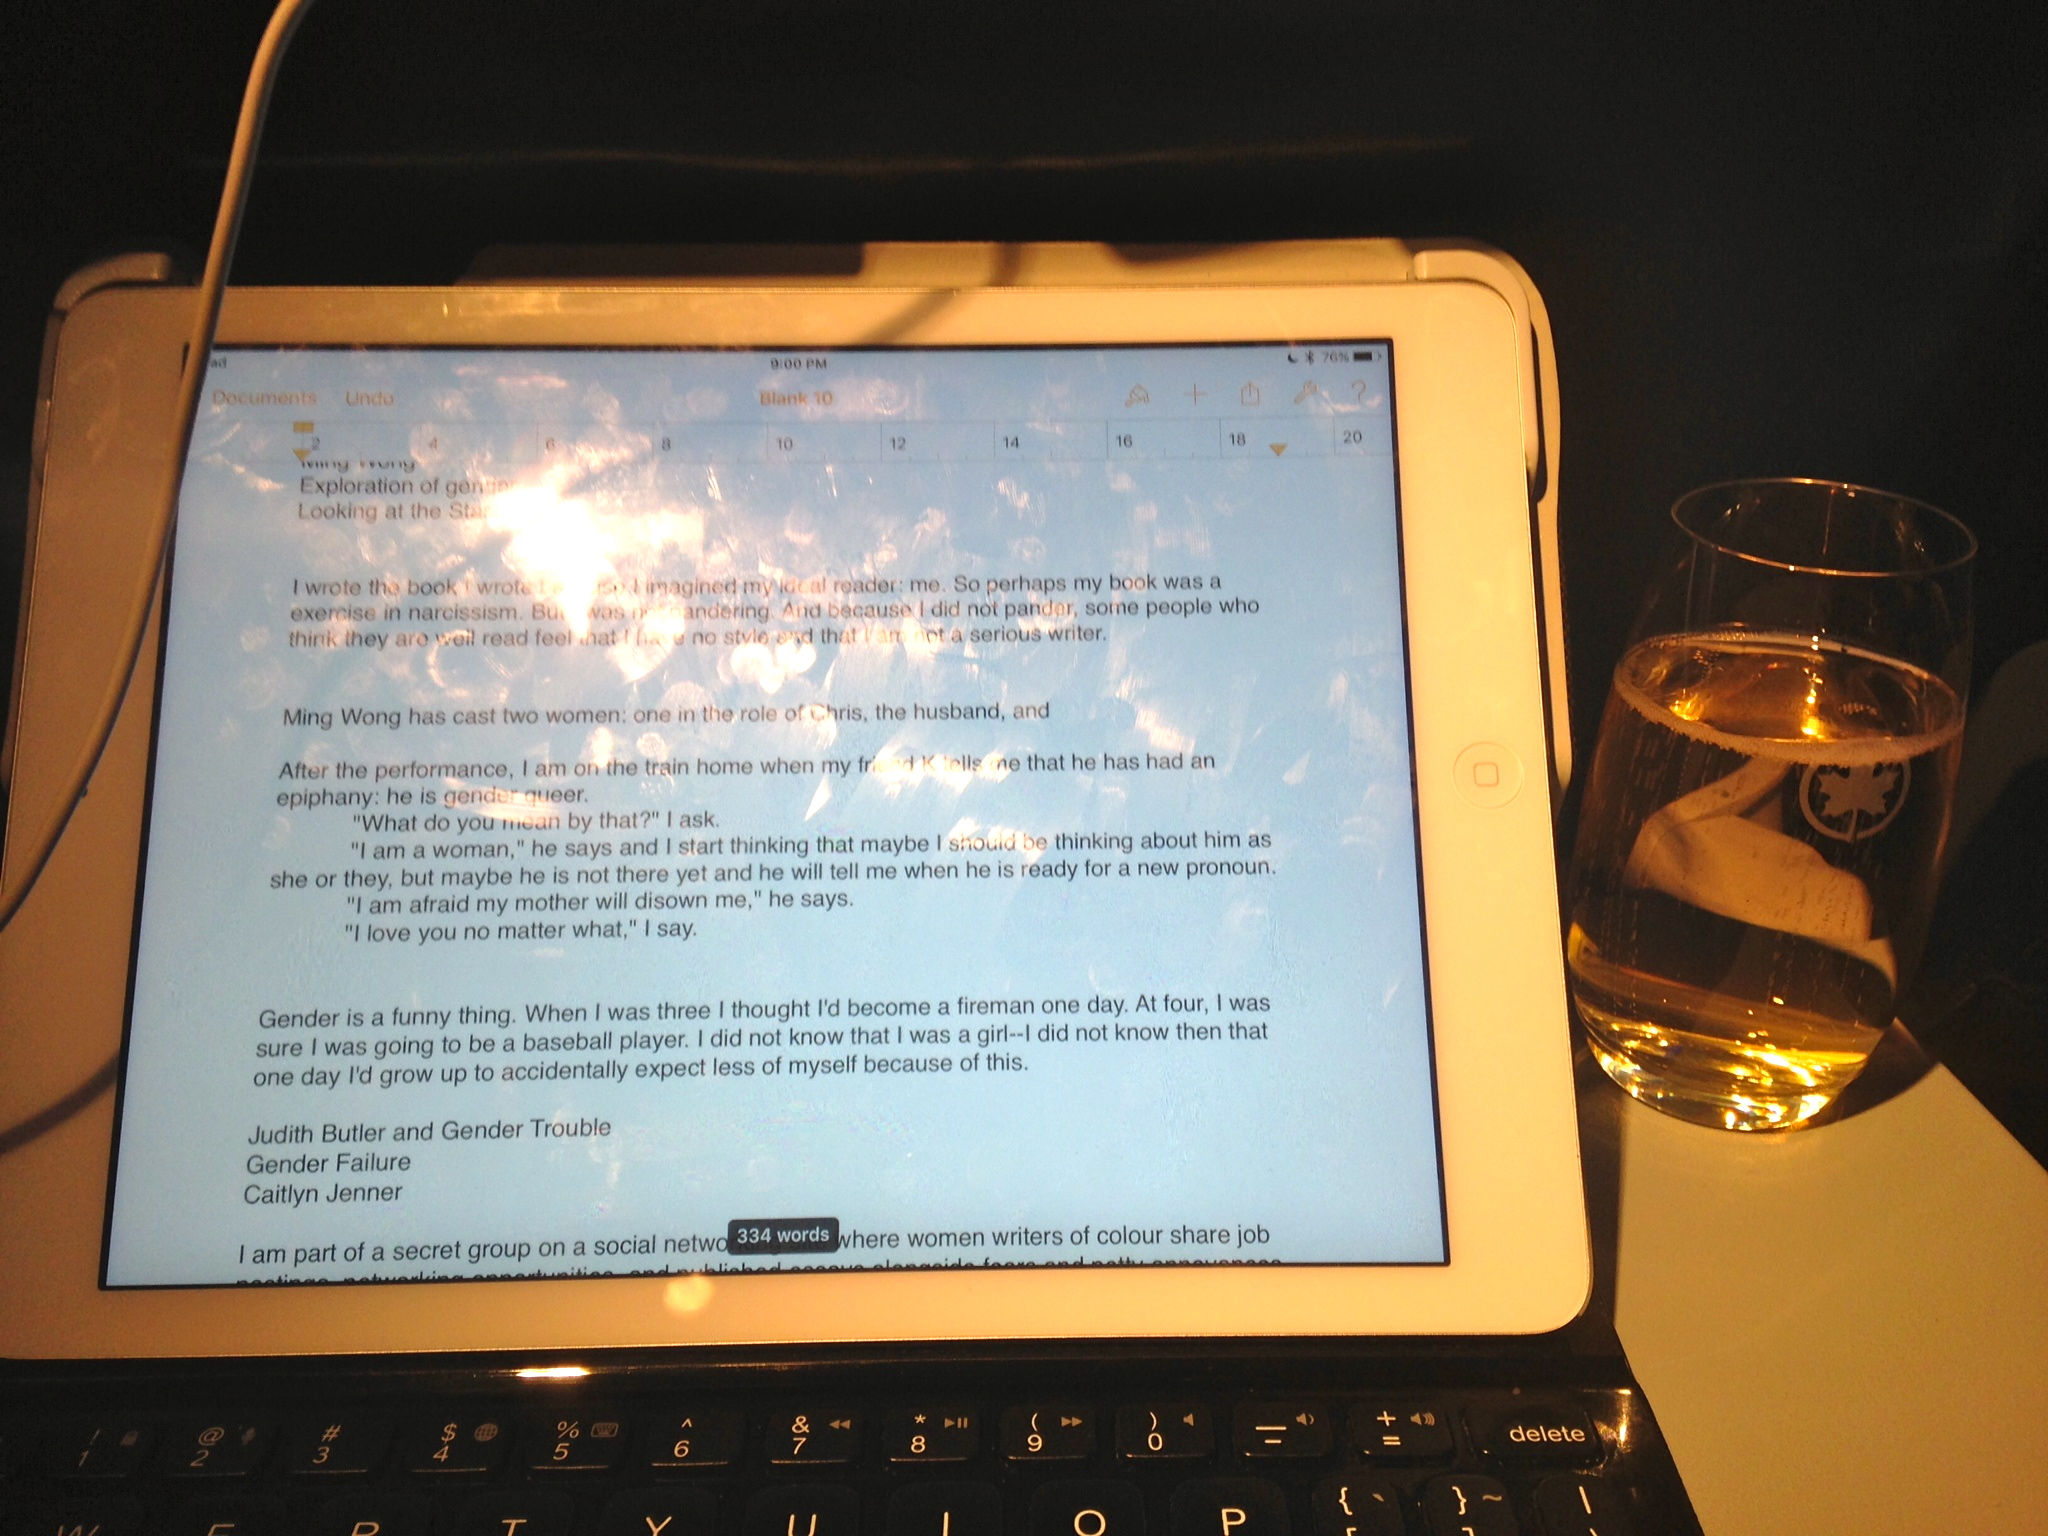 December 15, 2015: (right) There's a chance that this glass of Champagne is the last drink I'll ever have. (left) On the iPad, a messy set of notes and little scenes for an essay I am writing about gender. I'm showing you raw copy, which feels like I'm appearing before you naked while confessing every bad thing I've ever done.